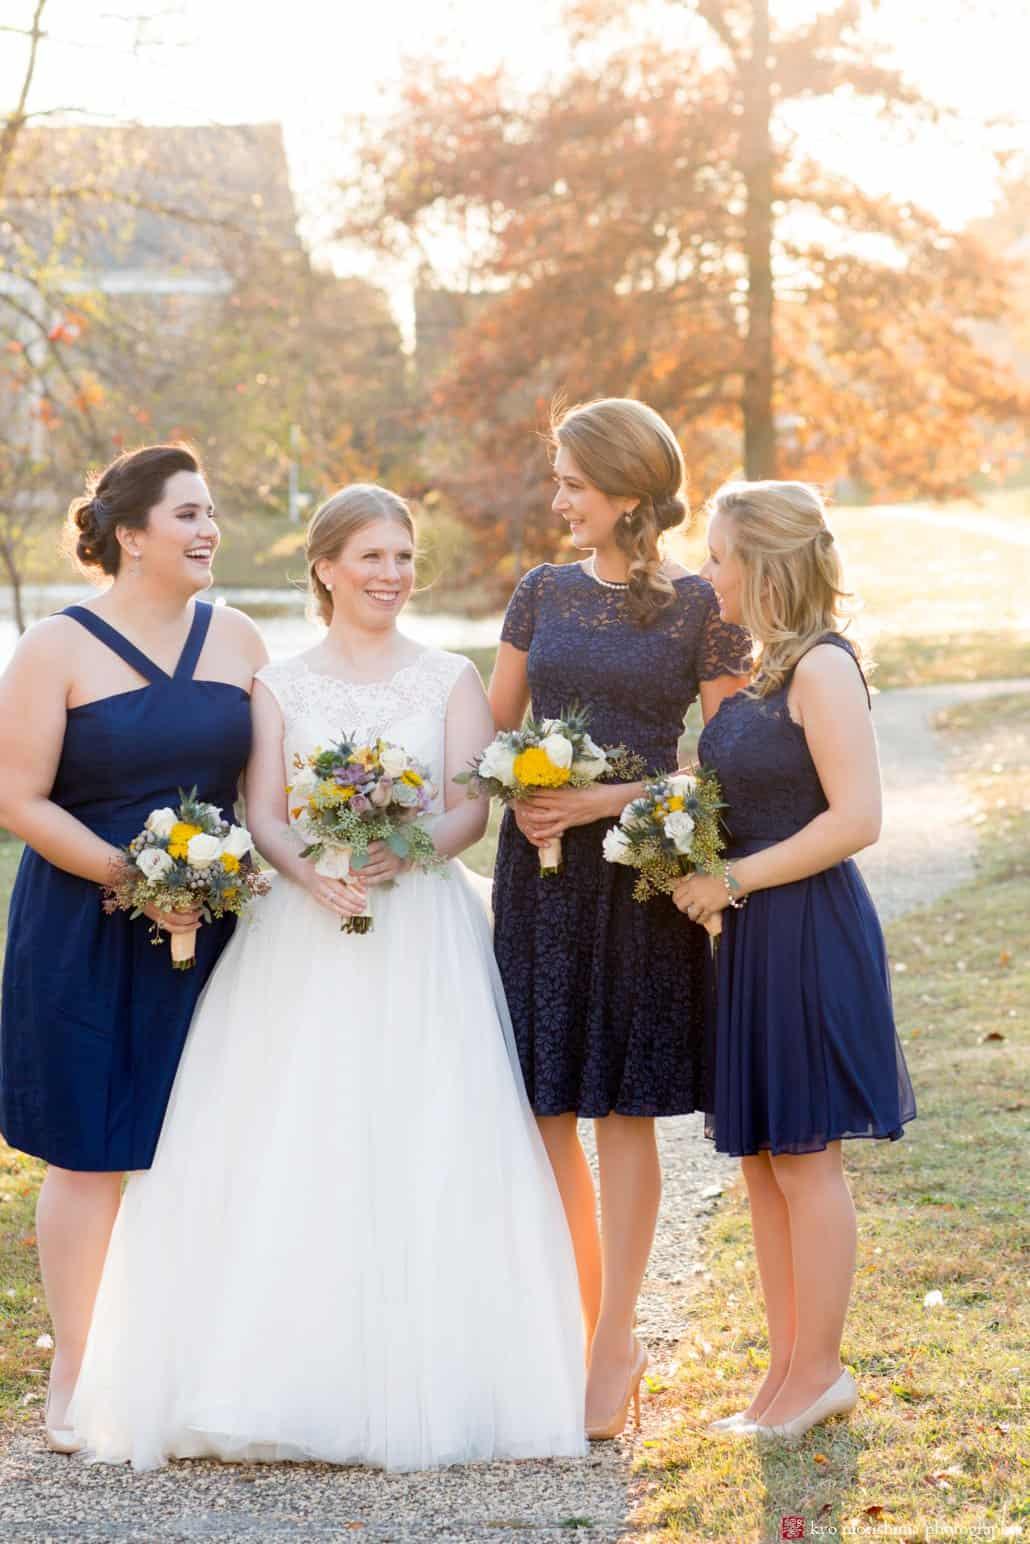 Bride holding yellow, mauve, grey and moss green fall wedding bouquet stands with bridesmaids wearing navy blue dresses in this Bernards Inn fall wedding party portrait